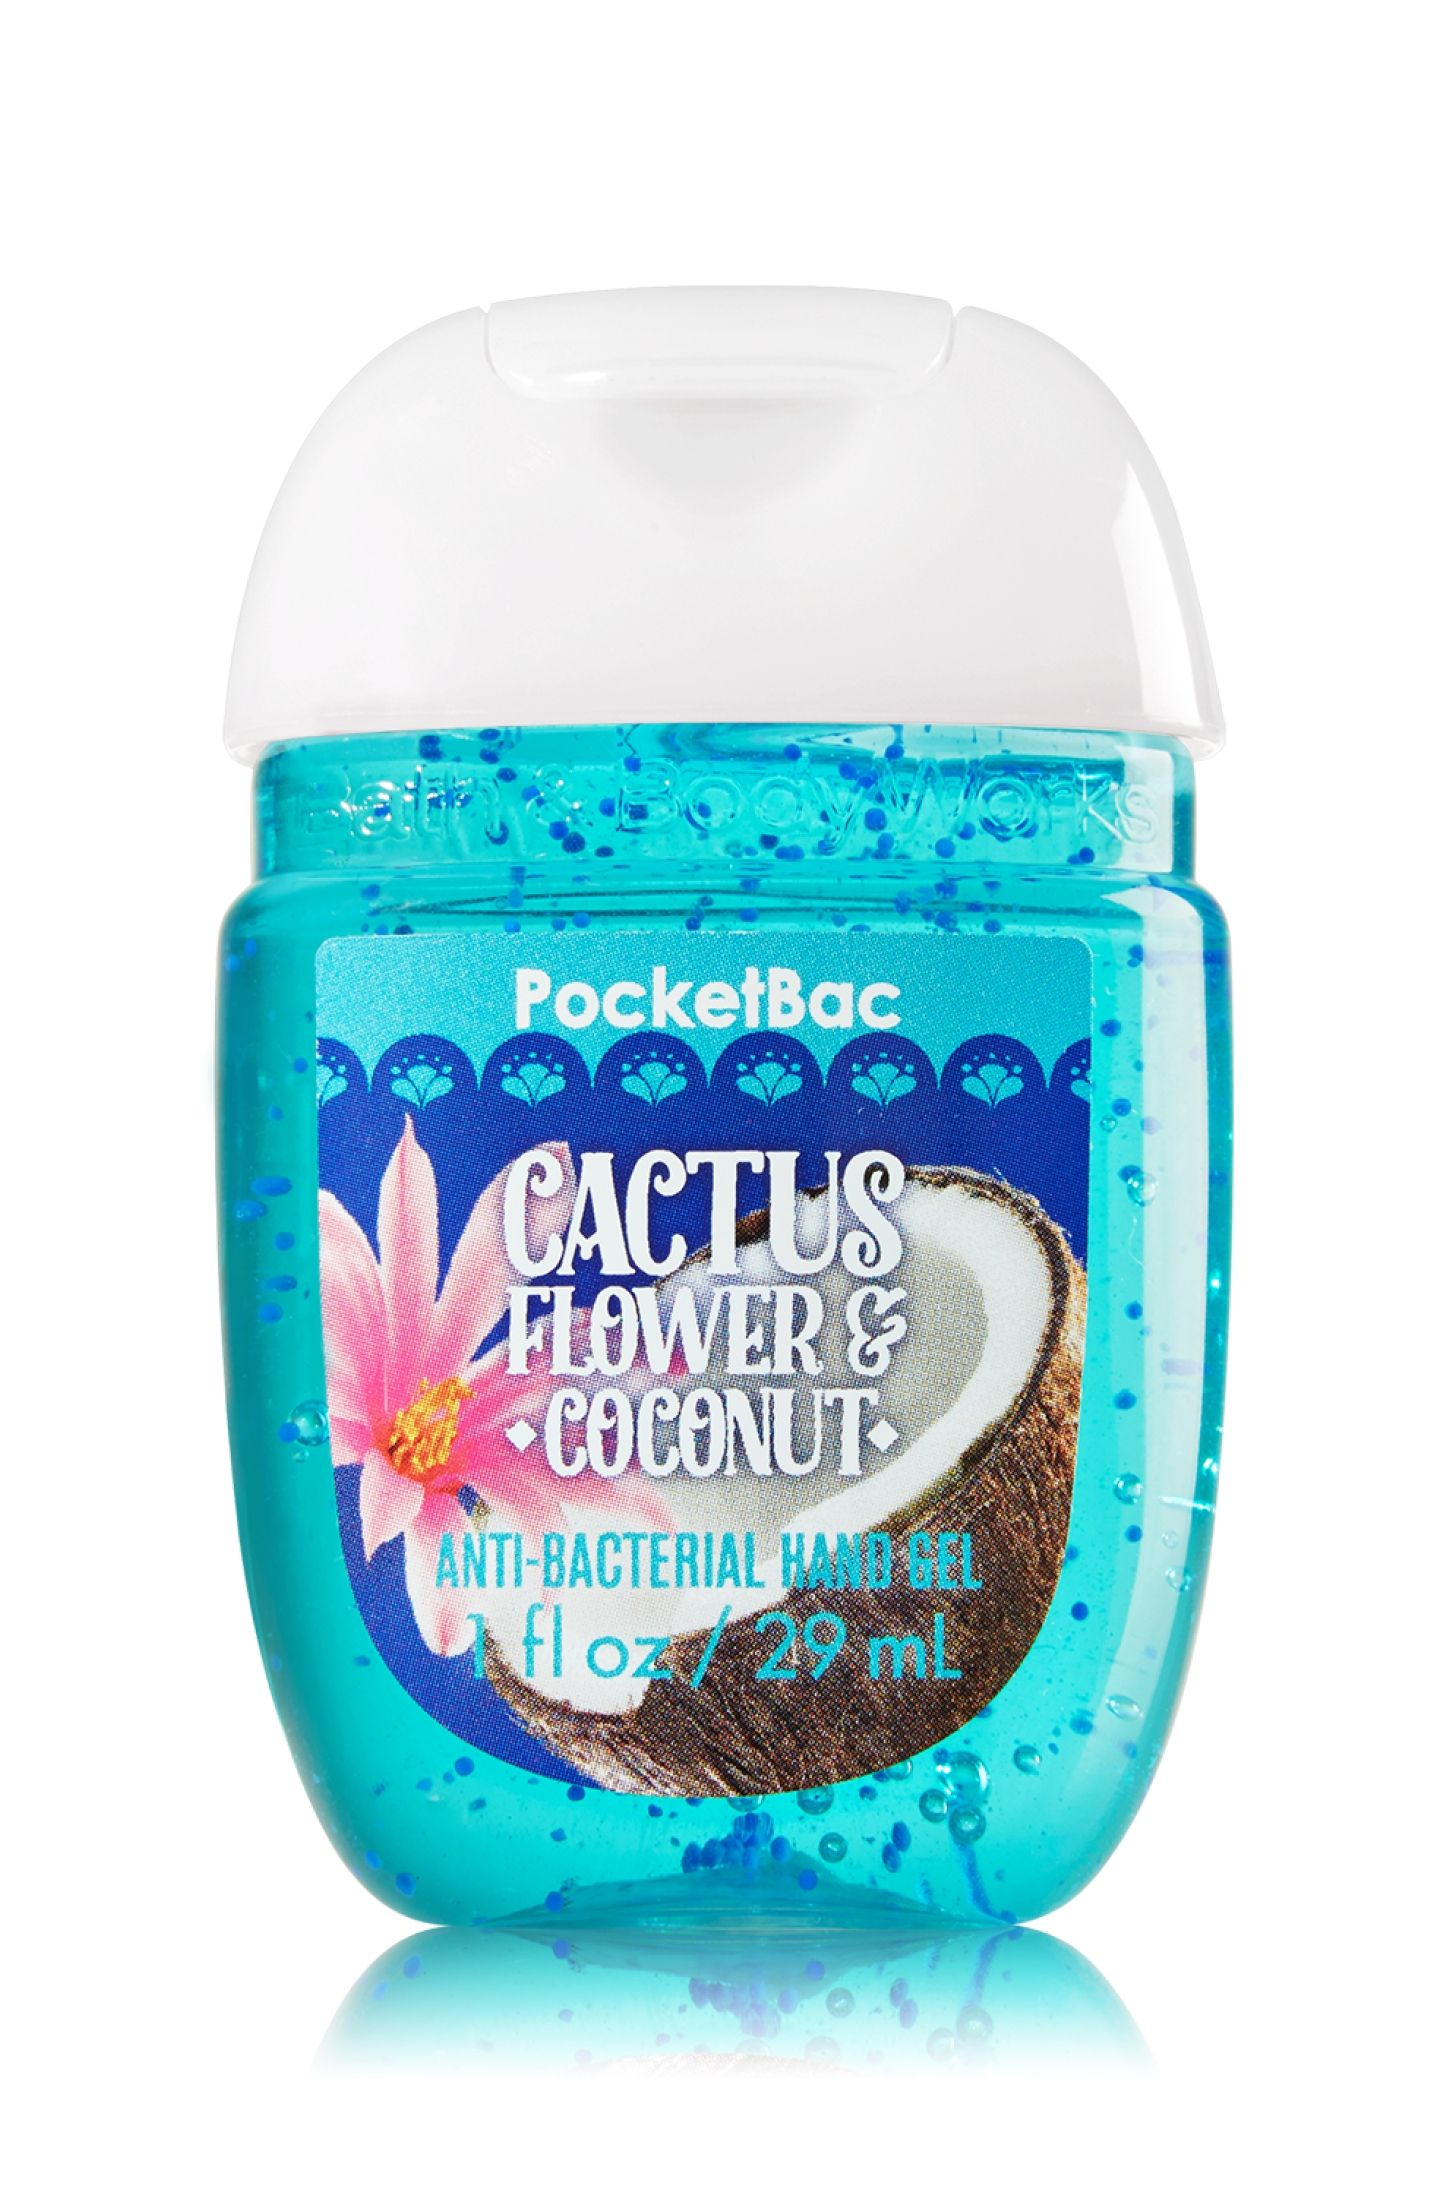 Cactus Flower Coconut Pocketbac Sanitizing Hand Gel Soap